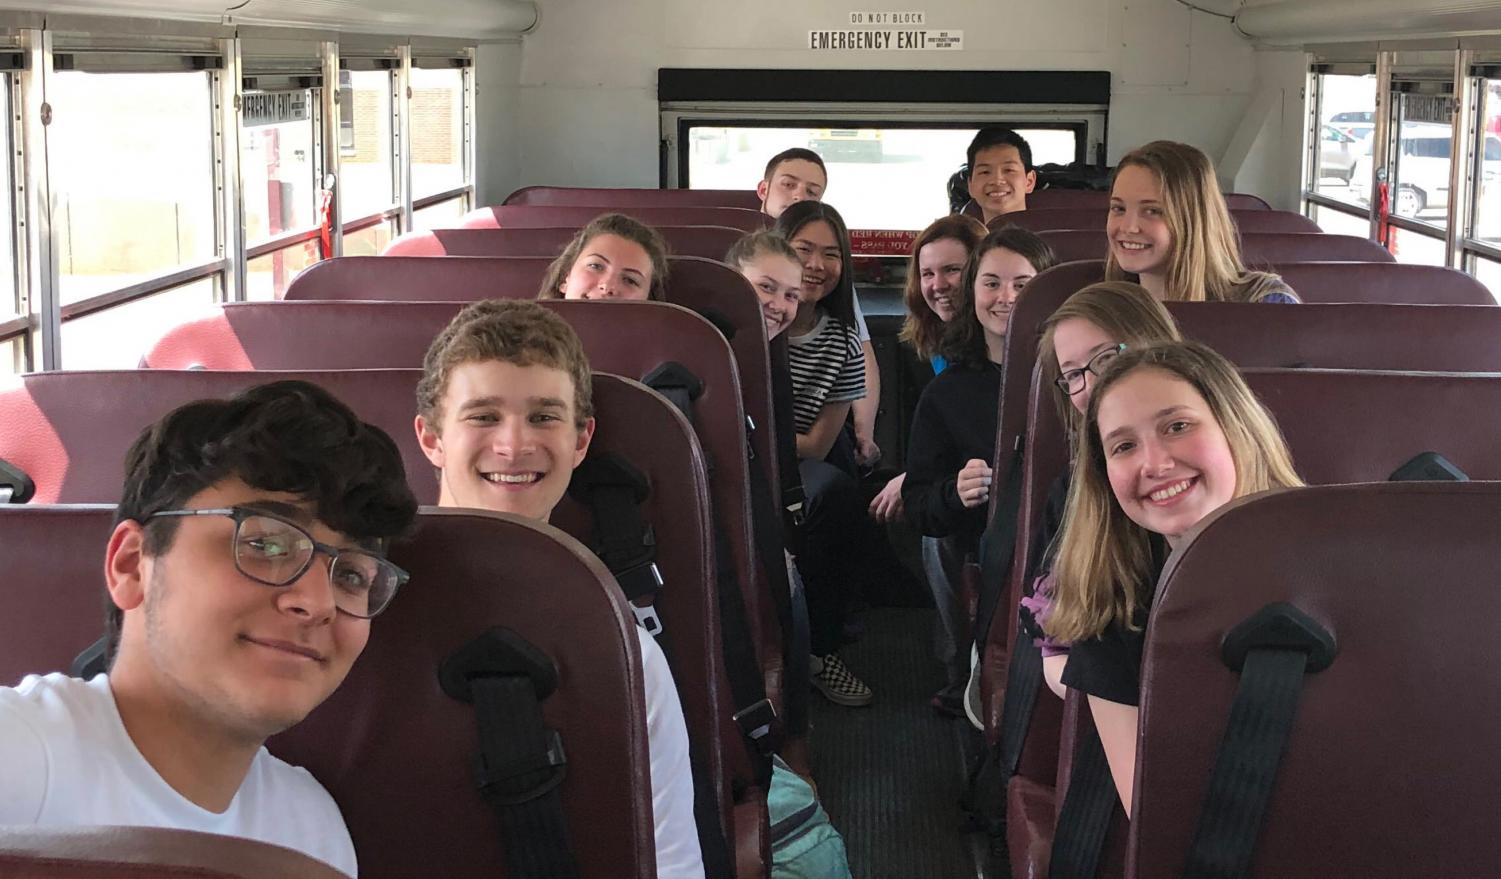 The Science Olympiad team on the bus before their competition at Wichita State University.